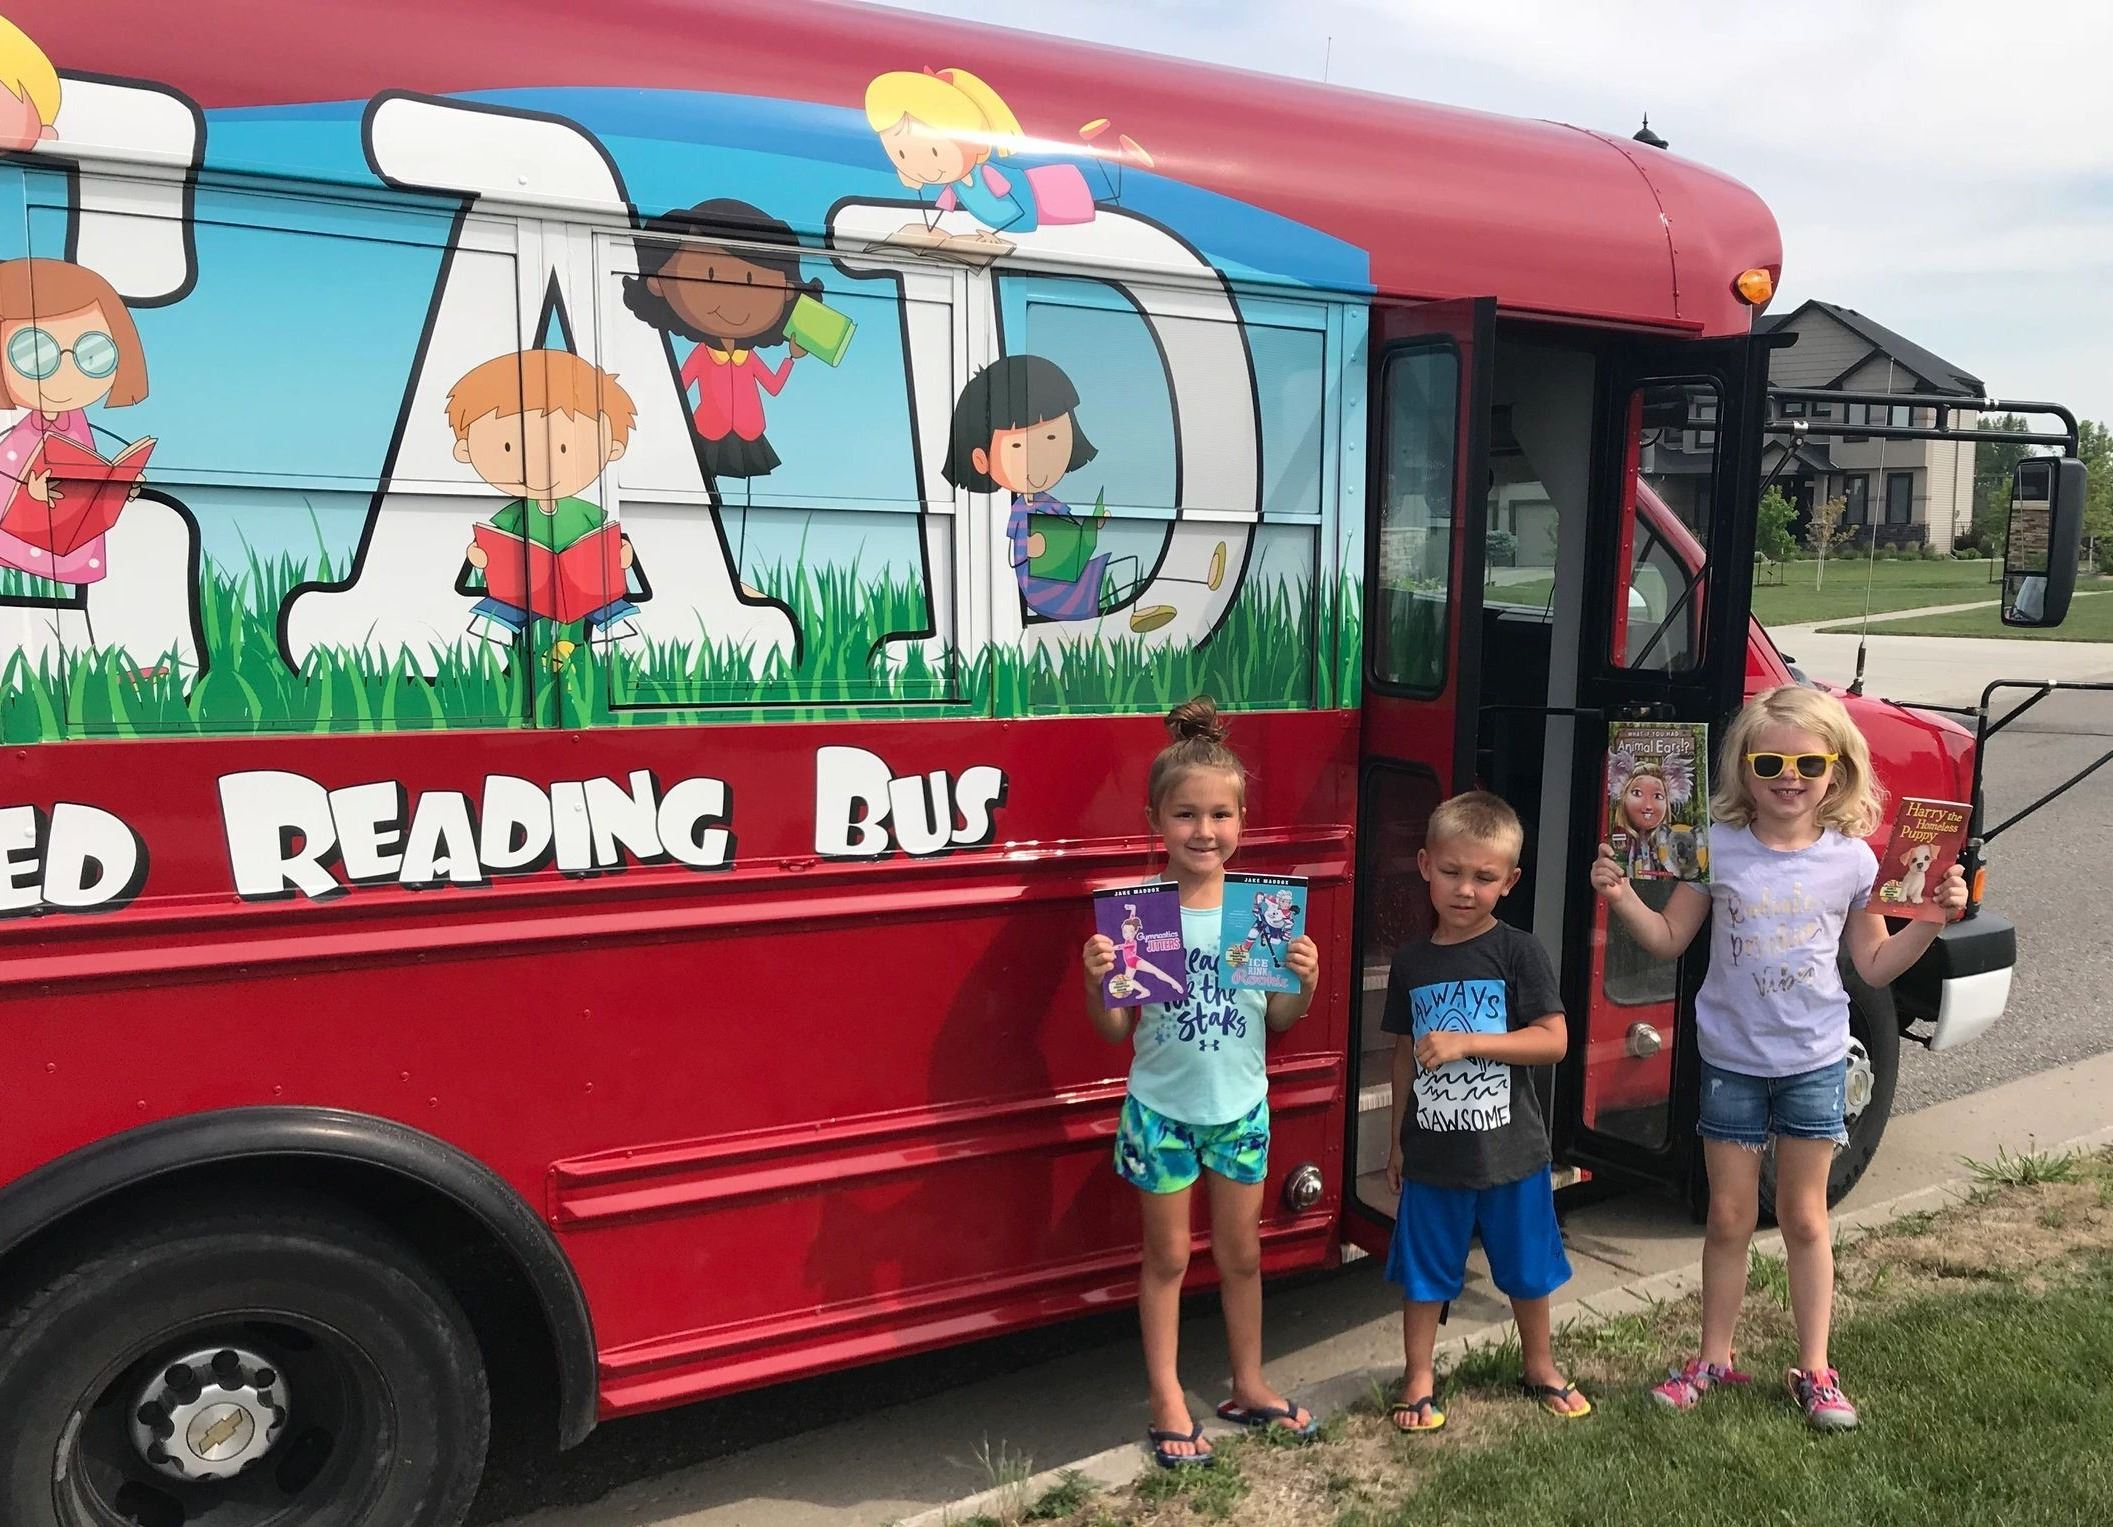 Kids standing in front of the Little Red Reading Bus